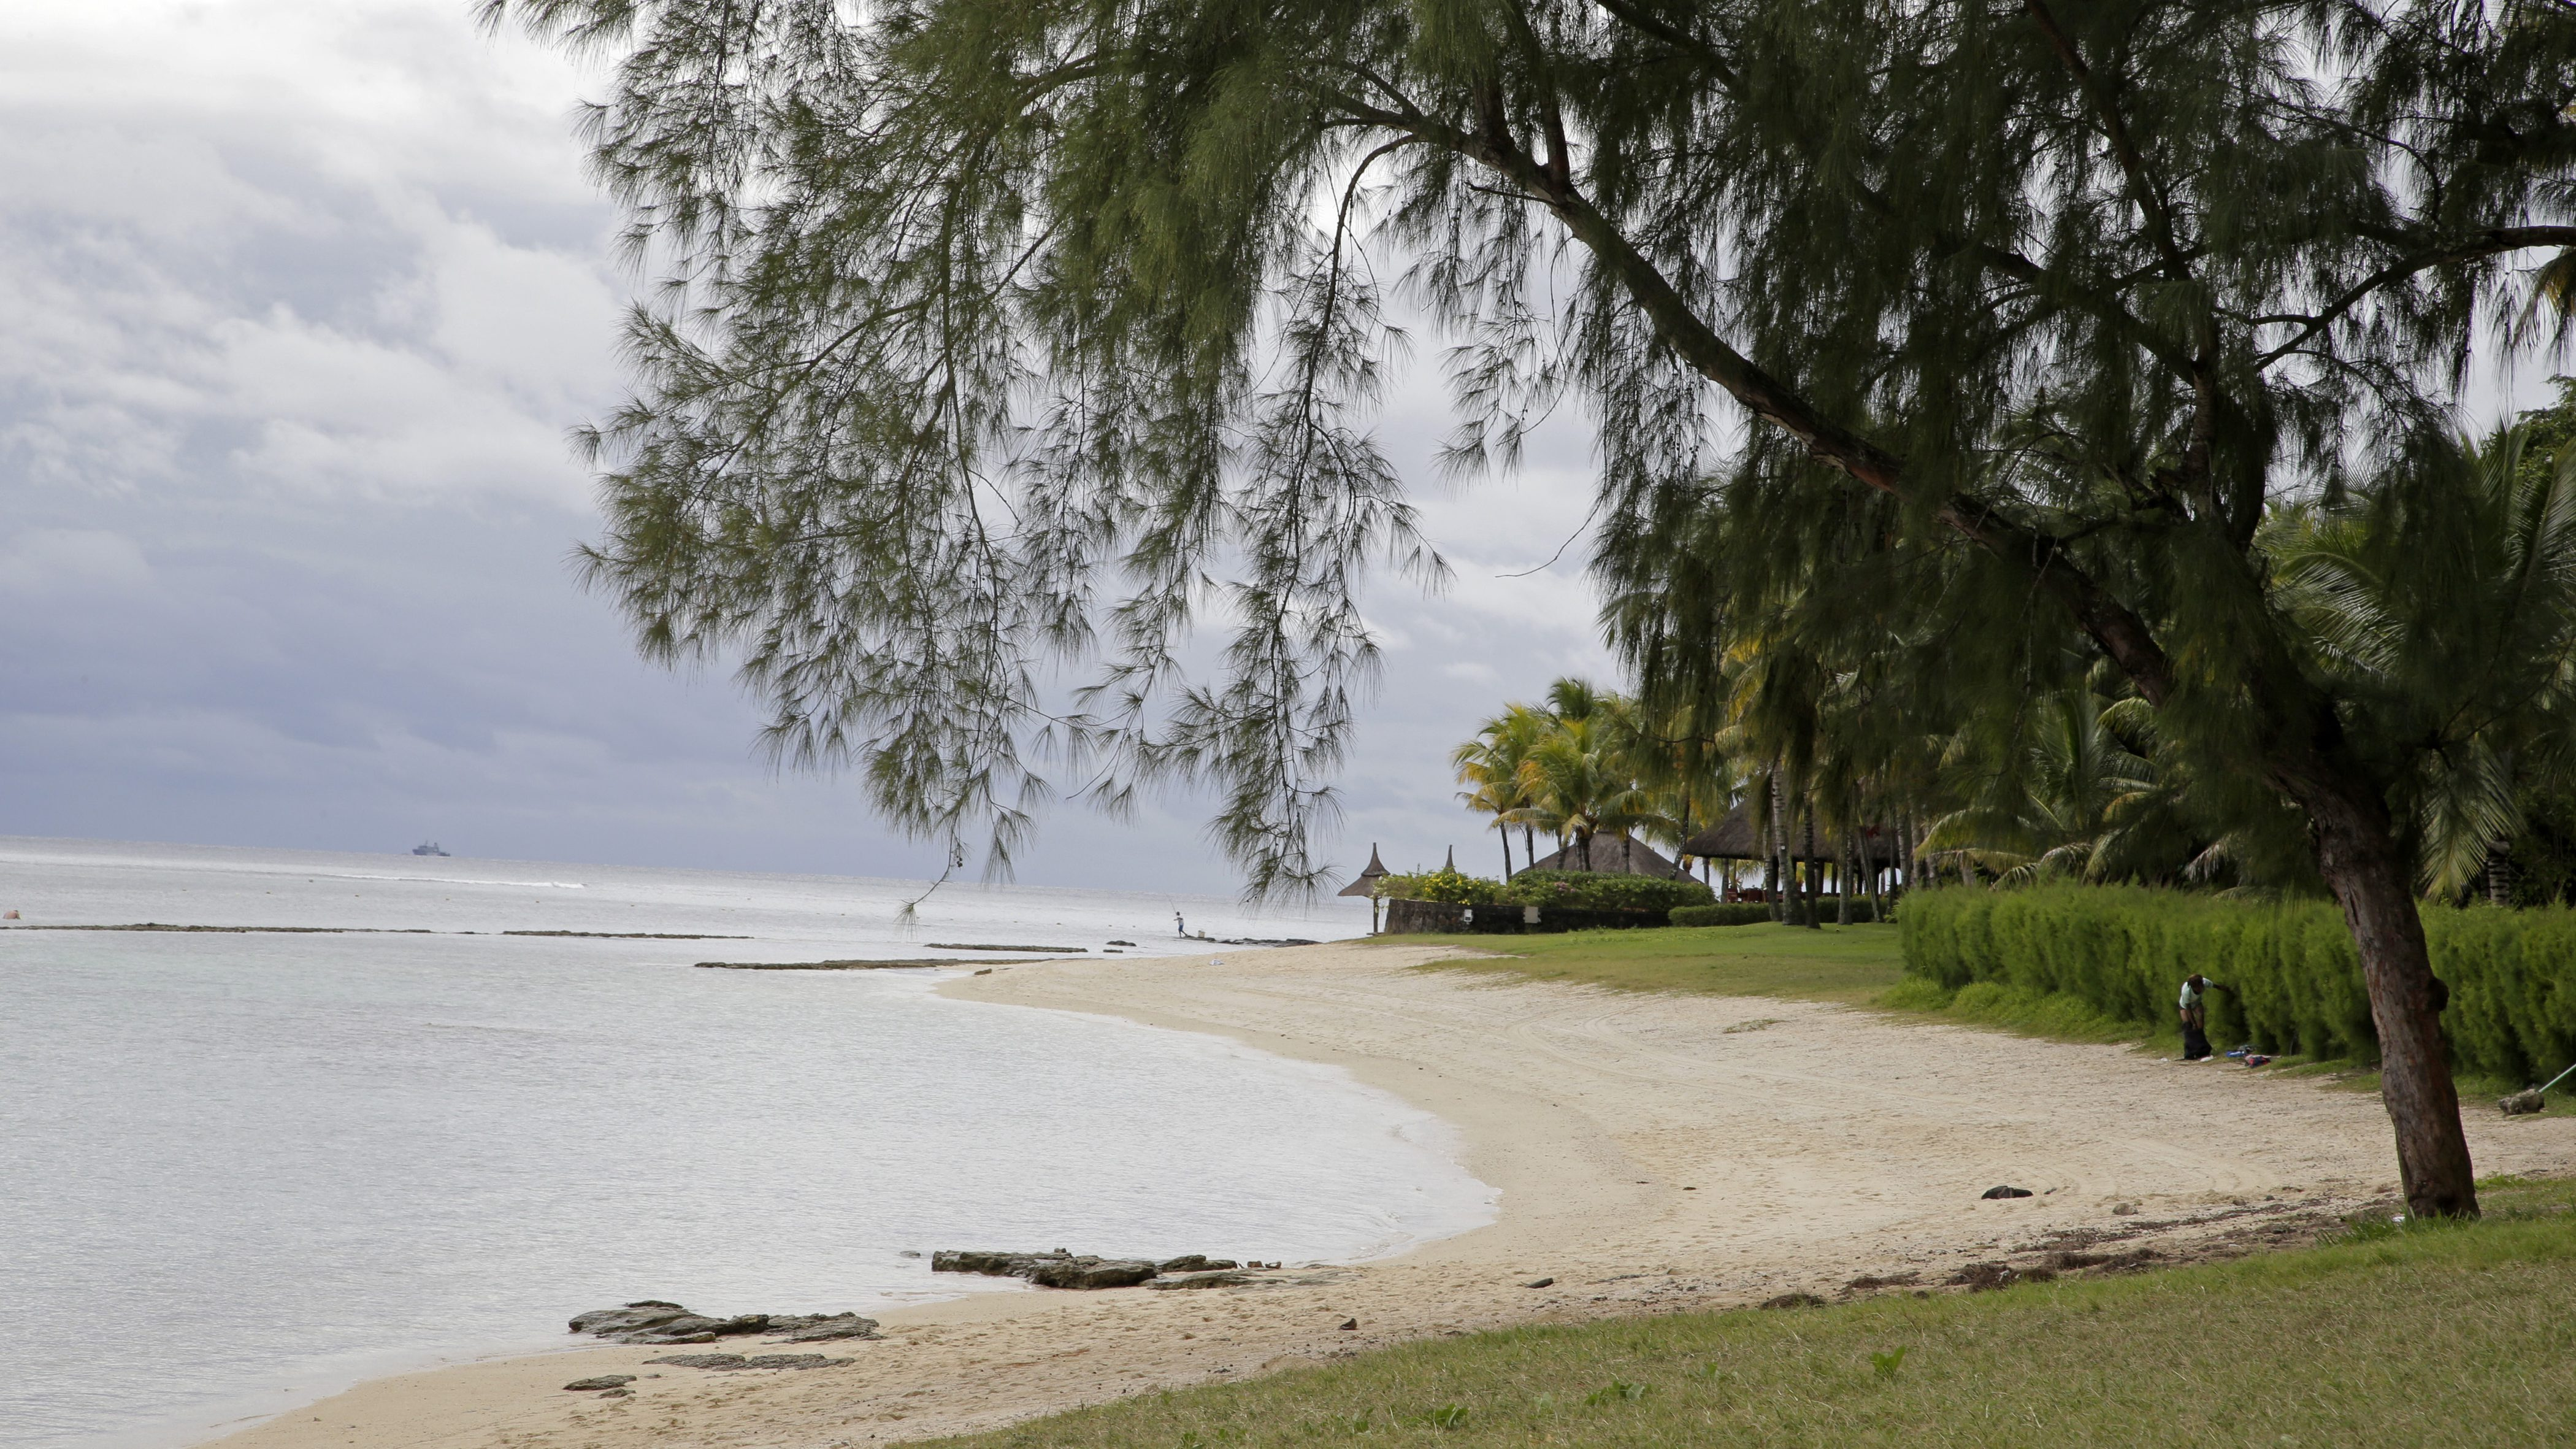 View of the Pointe aux Piments beach on the Indian Ocean island Mauritius